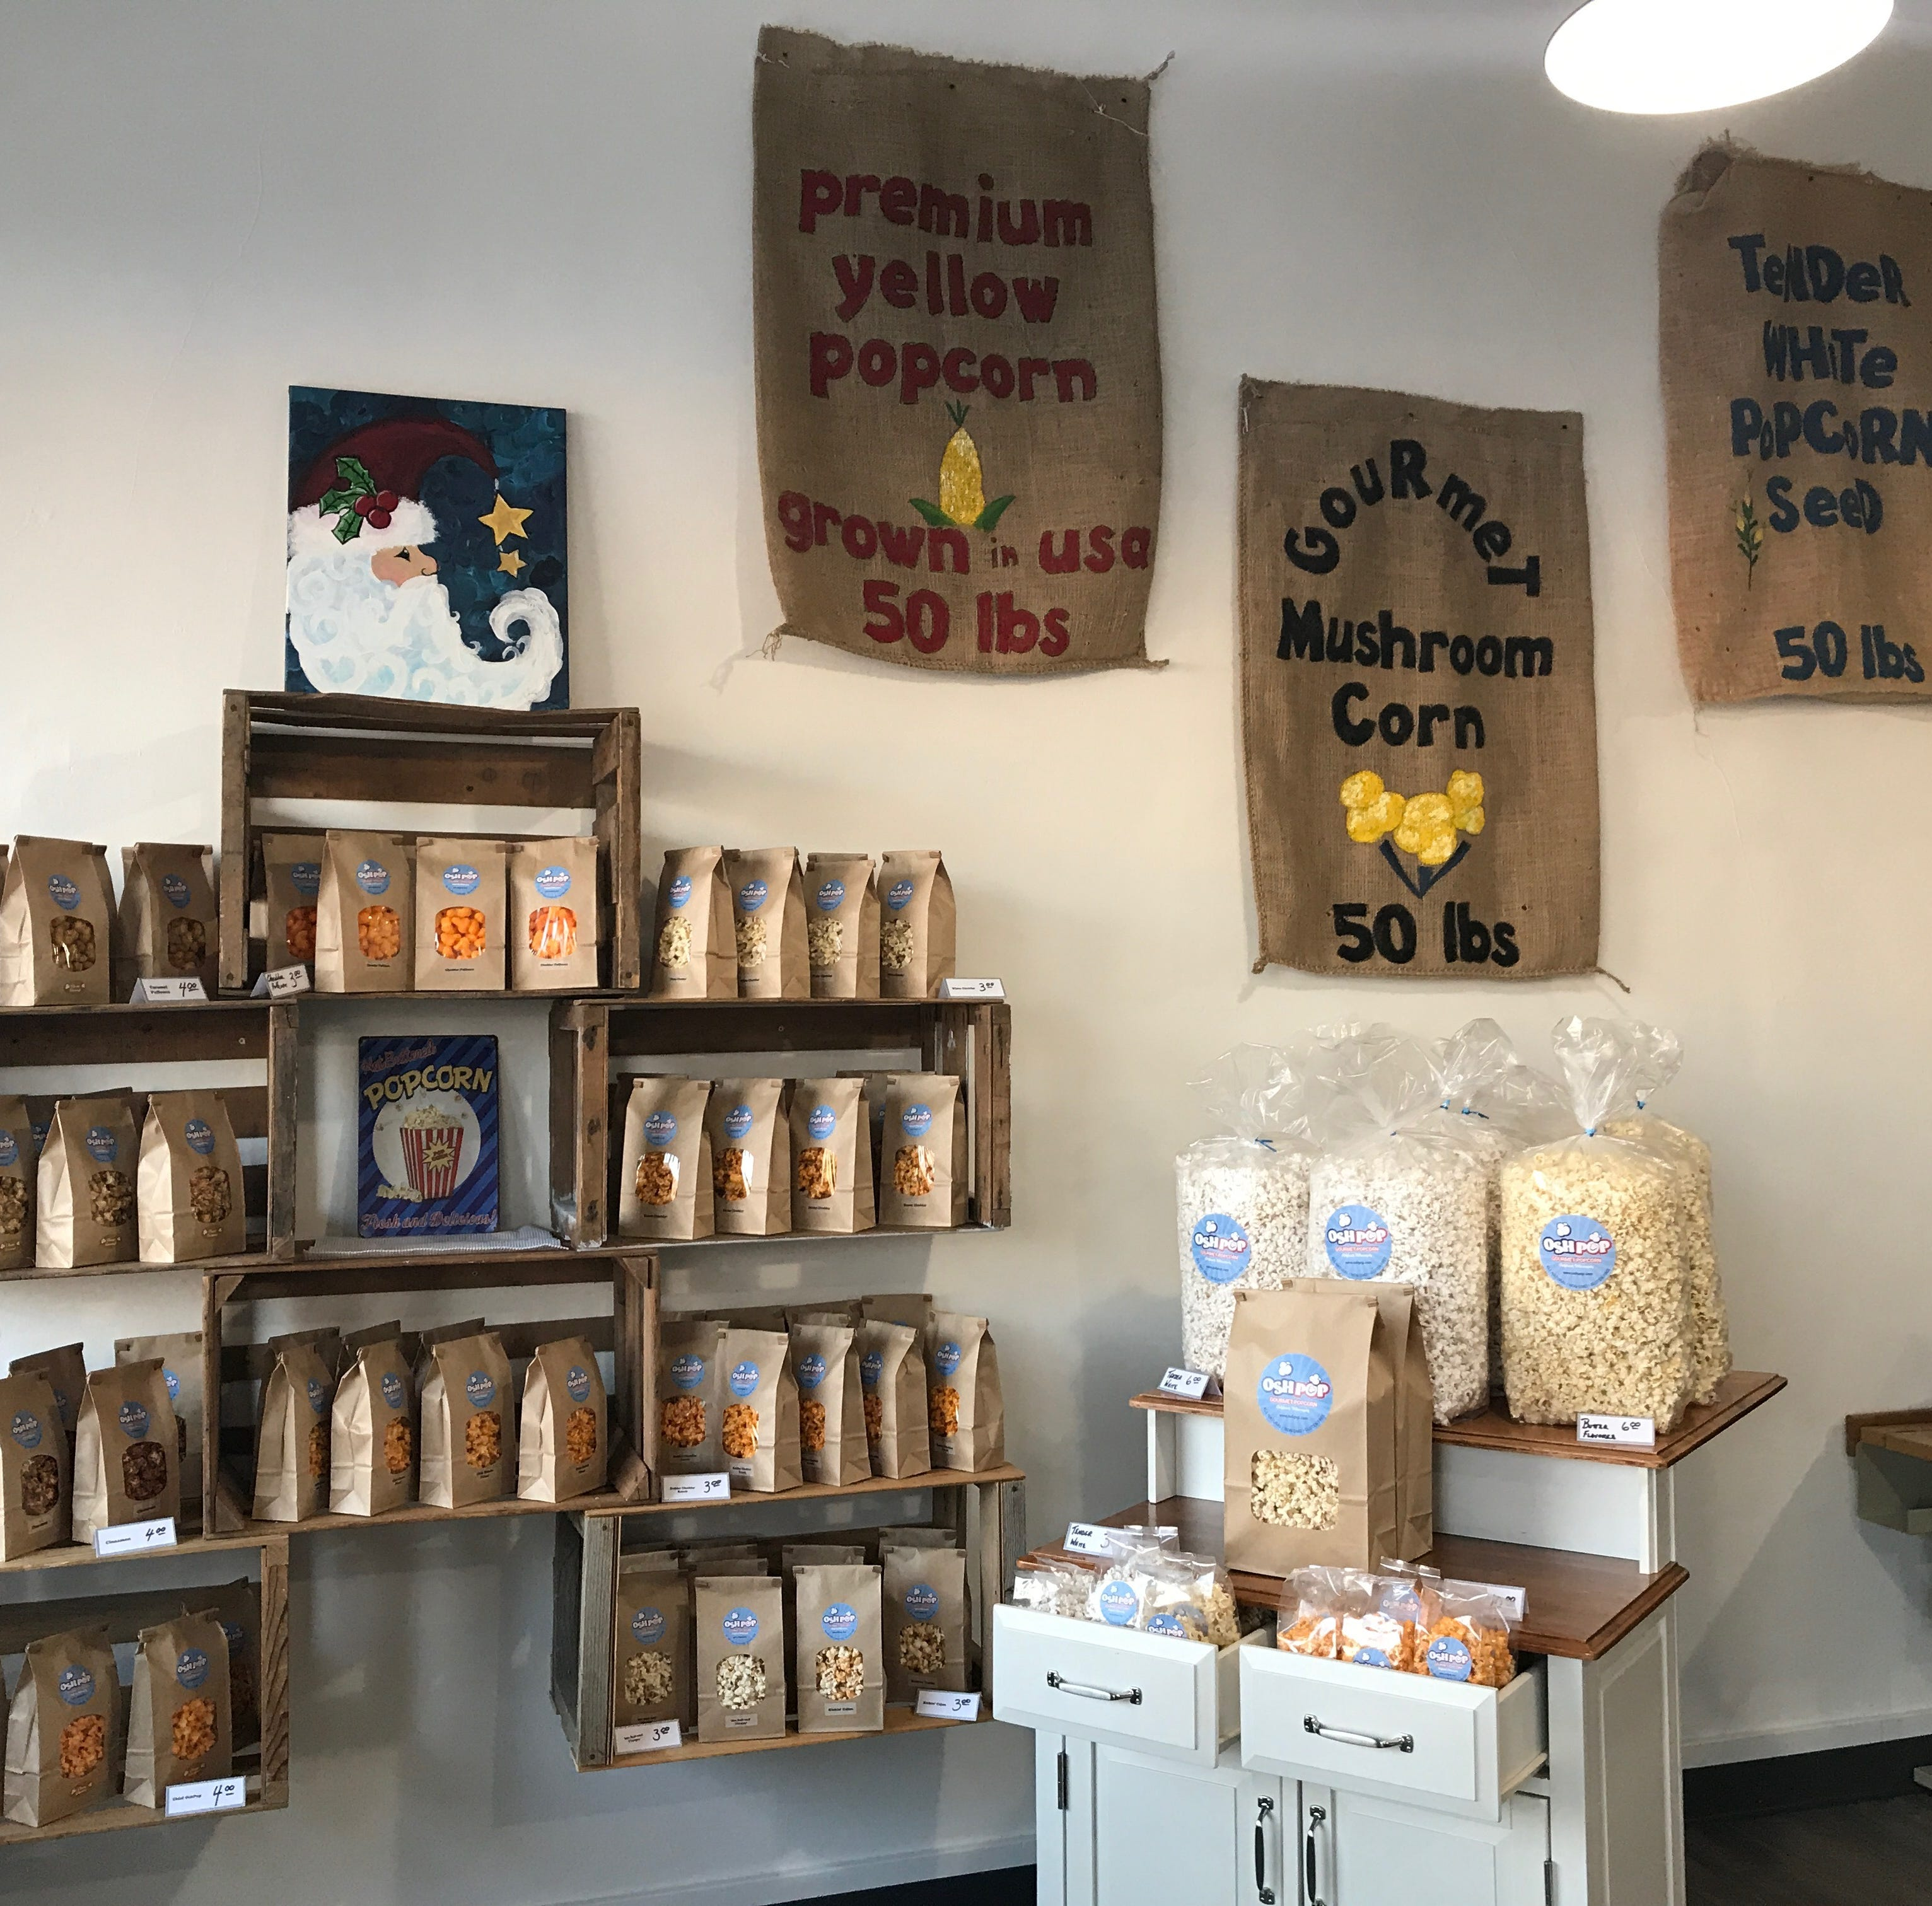 From jalapeno to cheddar caramel: OshPop brings fresh flavors to Oshkosh  Streetwise